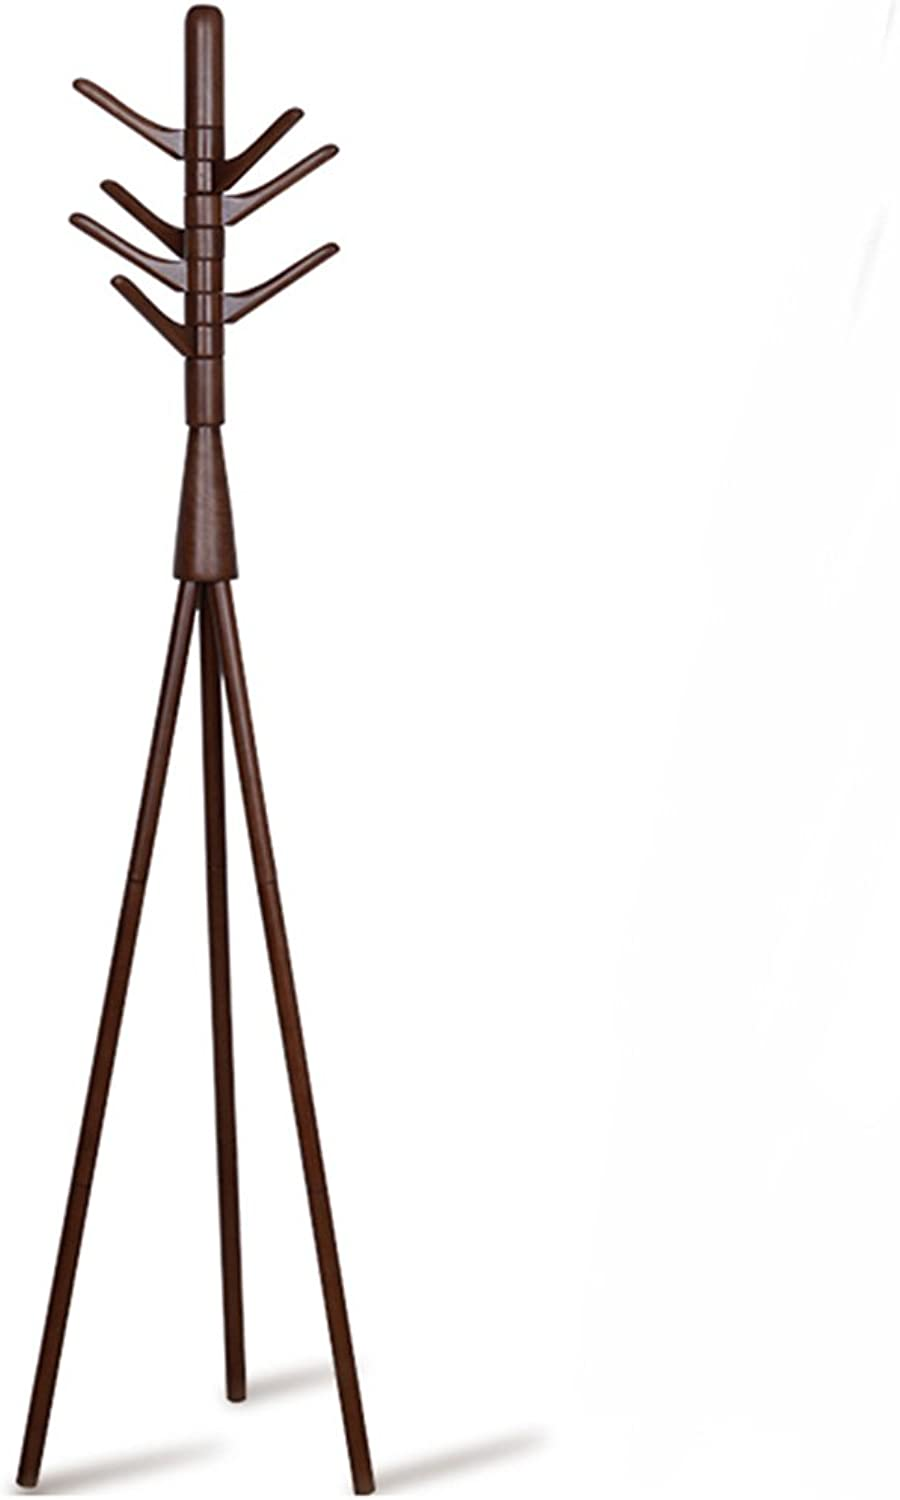 Creative Solid Wood Living Room Bedroom Coat Stand Hat Stand Indoor Floor-Standing Clothes Racks(color Optional, 43  180cm) (color   Coffee color)